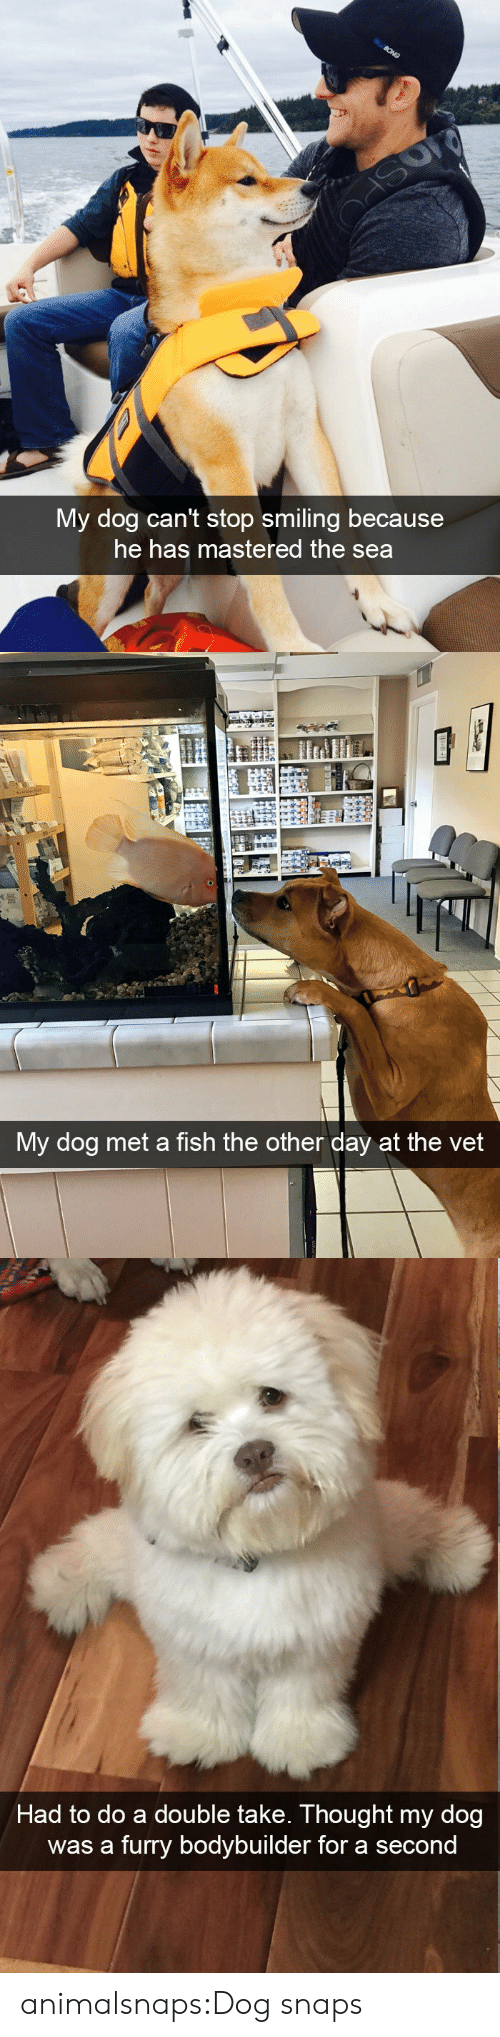 Target, Tumblr, and Blog: My dog can't stop smiling because  he has mastered the sea   My dog met a fish the other day at the vet   Had to do a double take. Thought my dog  was a furry bodybuilder for a secon animalsnaps:Dog snaps